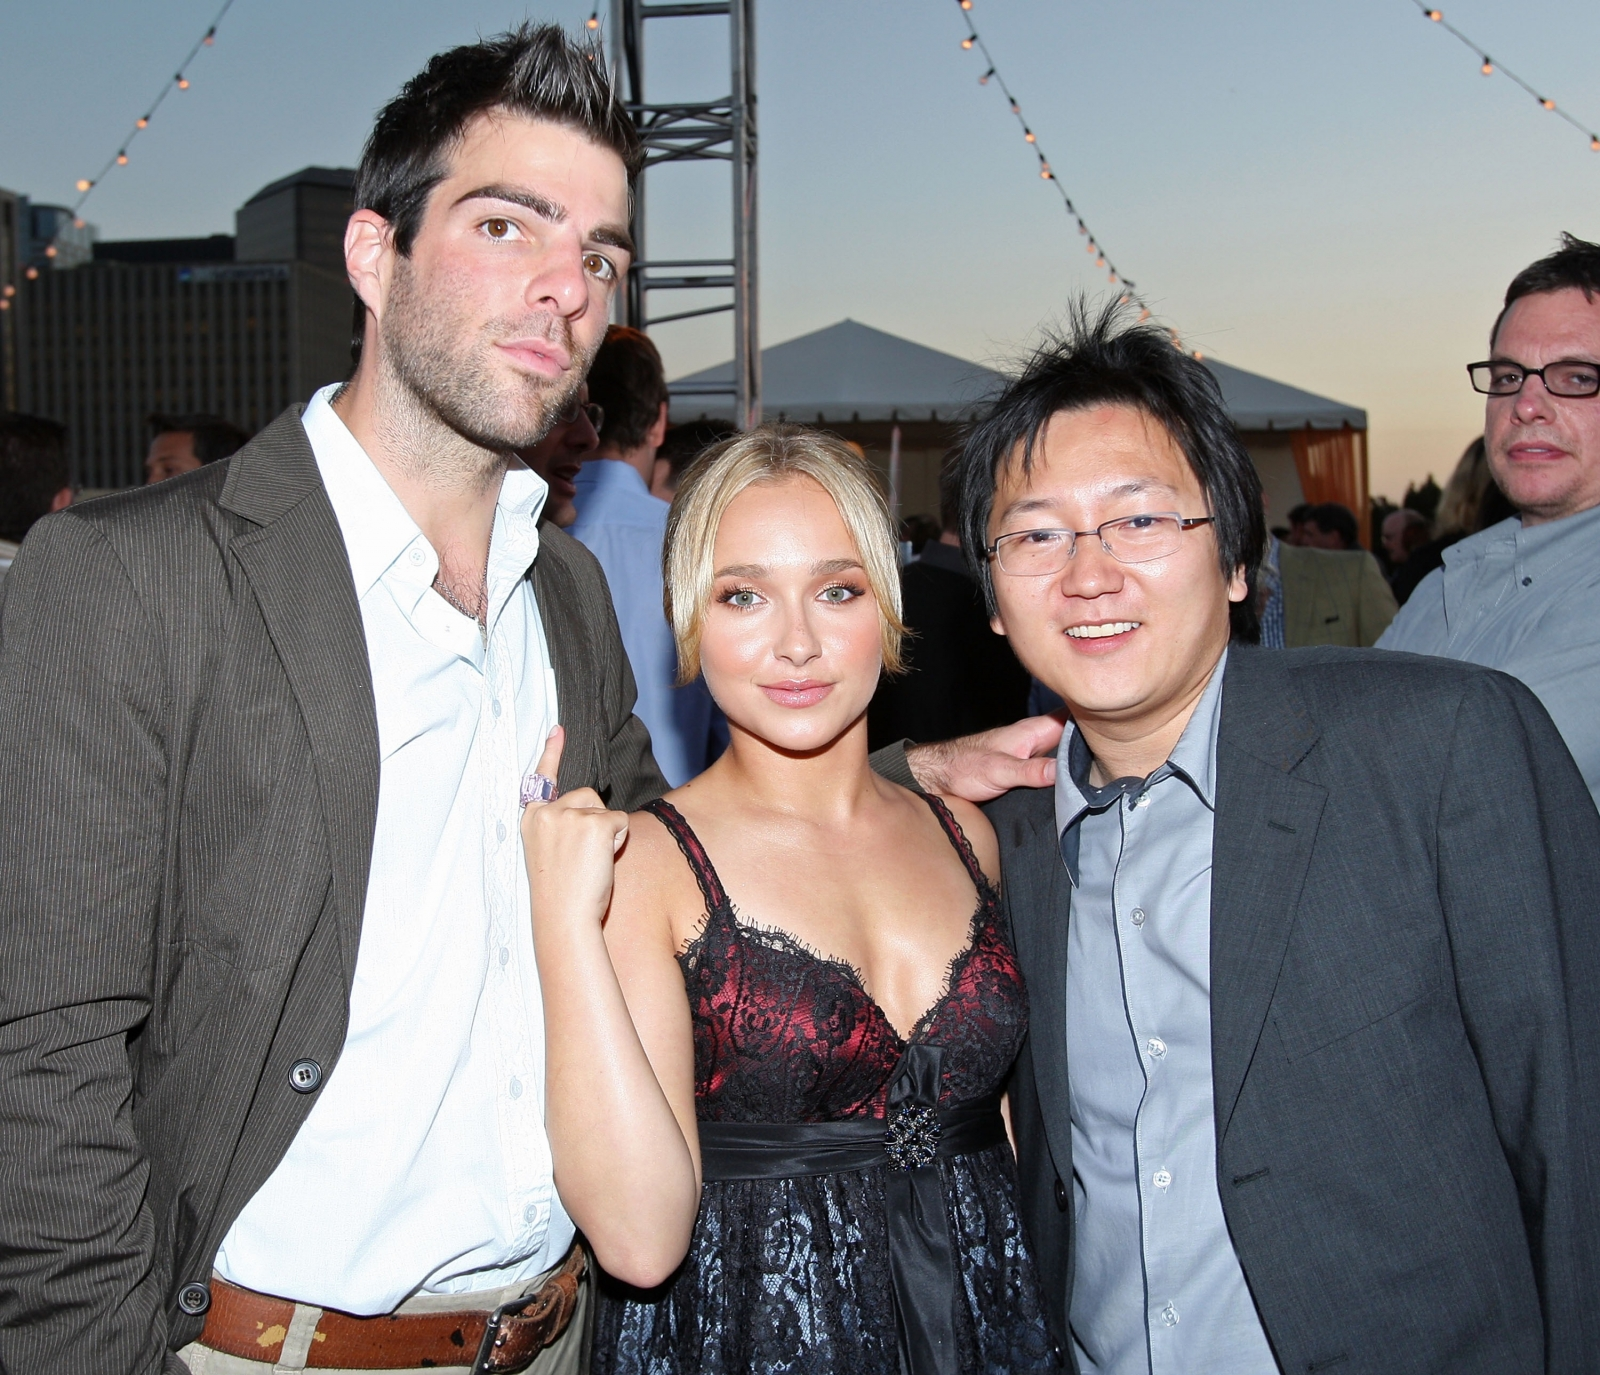 Zachary Quinto, Hayden Panettiere and Maki Osa